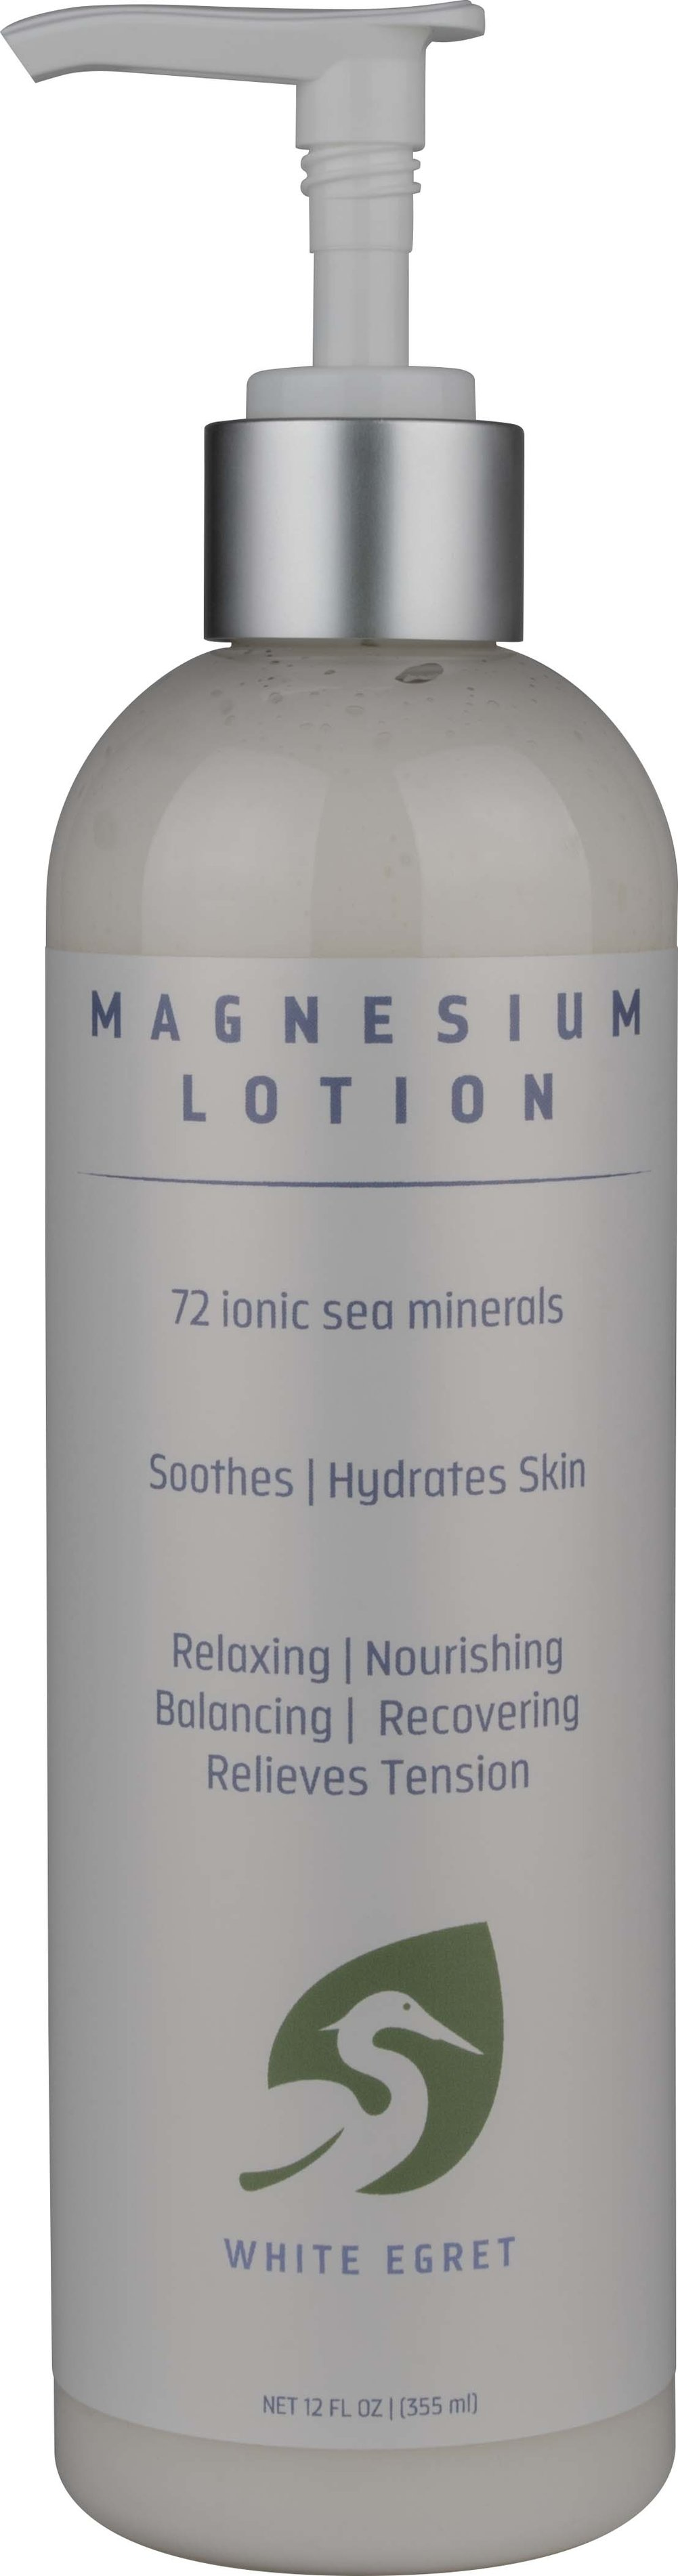 Magnesium Lotion Thumbnail Alternate Bottle View